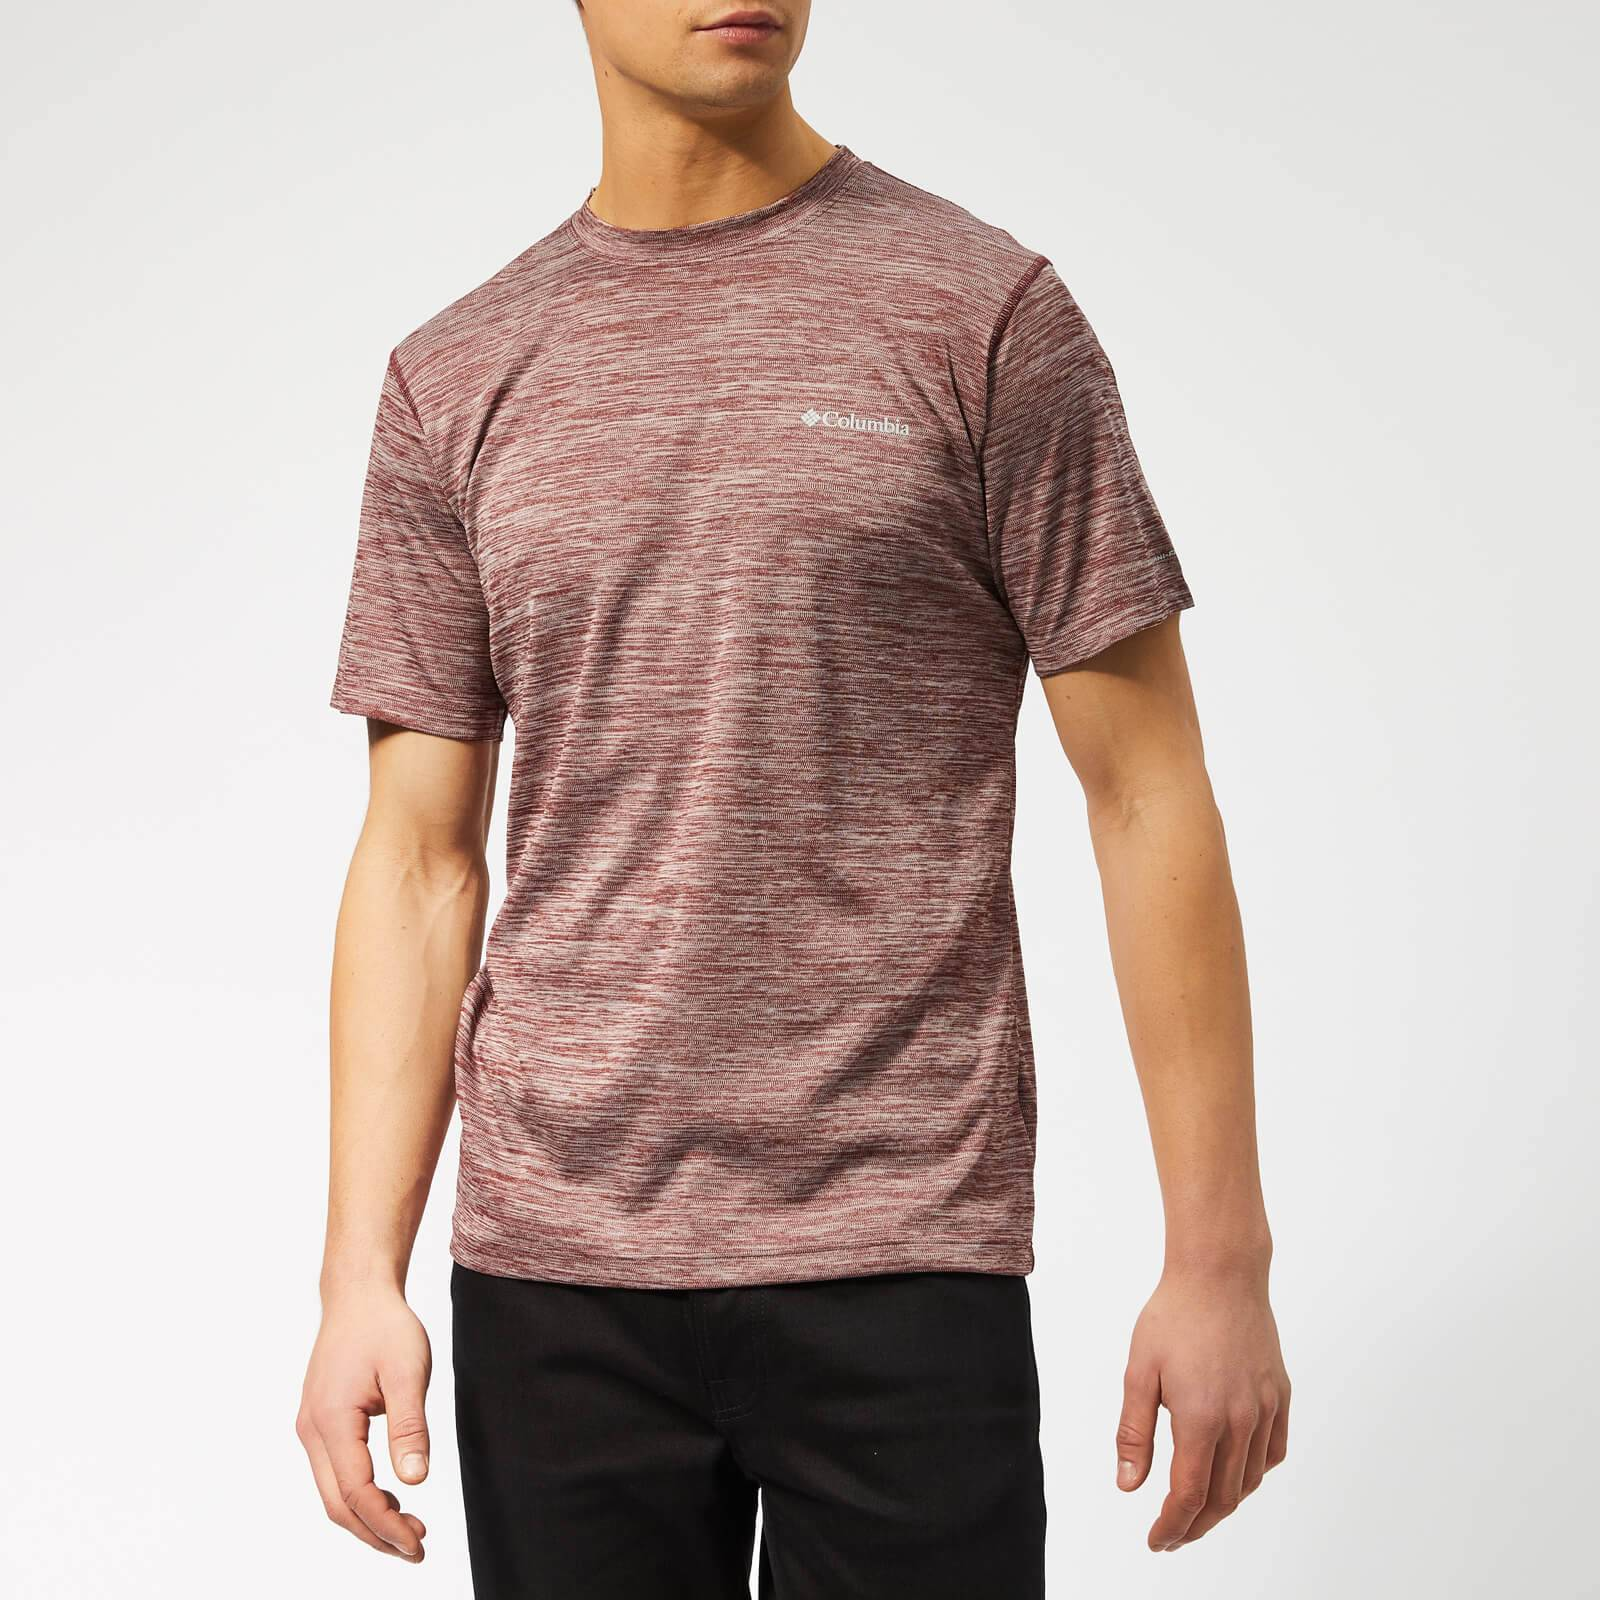 Columbia Men's Zero Rules Short Sleeve T-Shirt - Tapestry Heather - S - Red